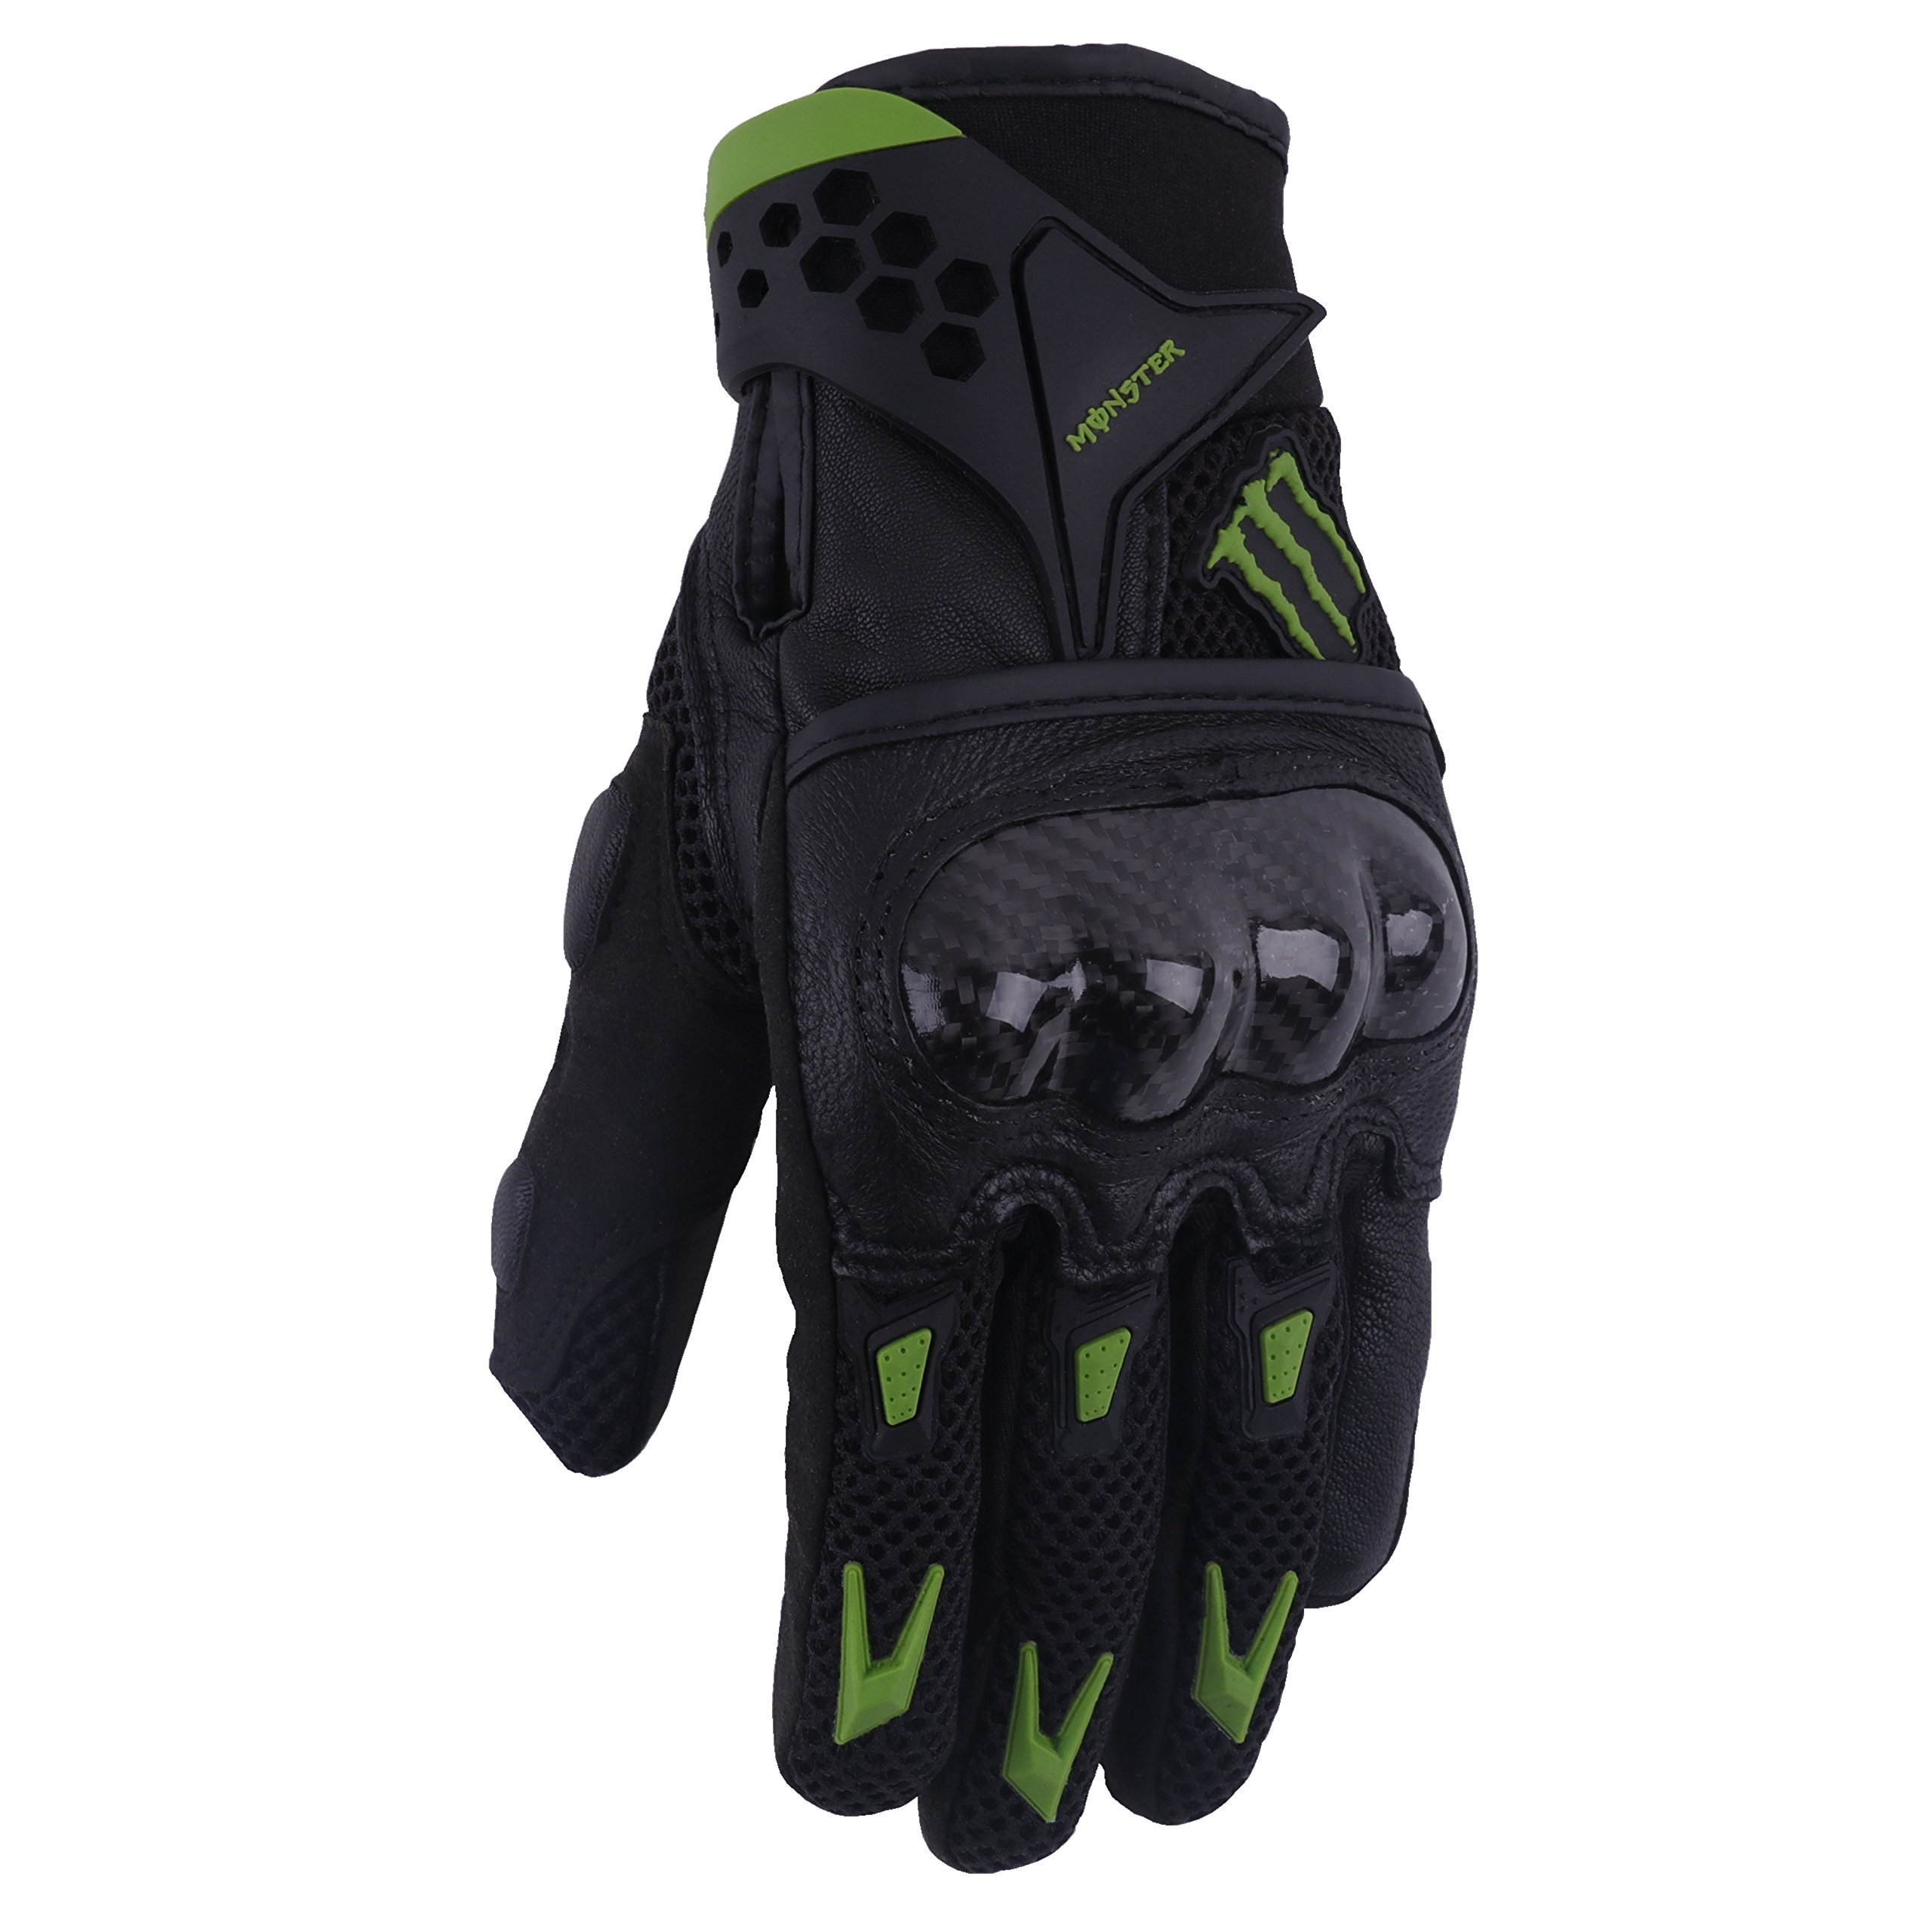 A Pair of Pro-Biker Carbon Fiber Leather Bicycle Motorcycle Motorbike Powersports Racing Gloves (M, Green)